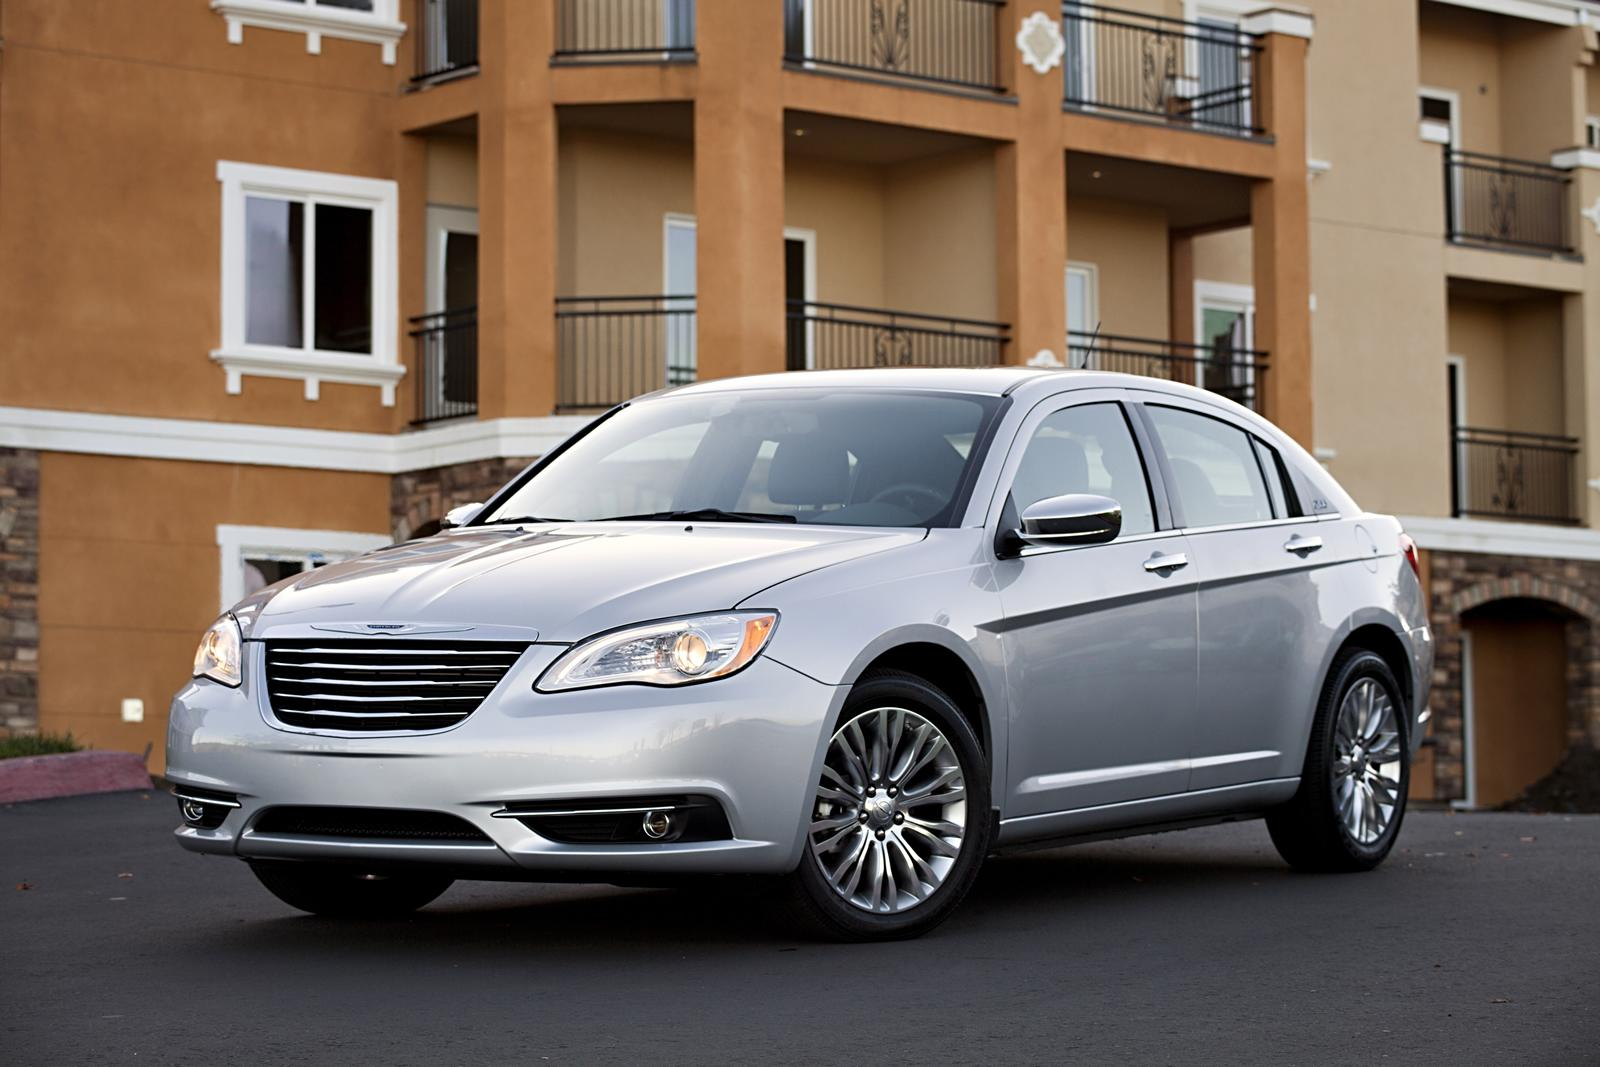 Luxury car Chrysler 200 2011